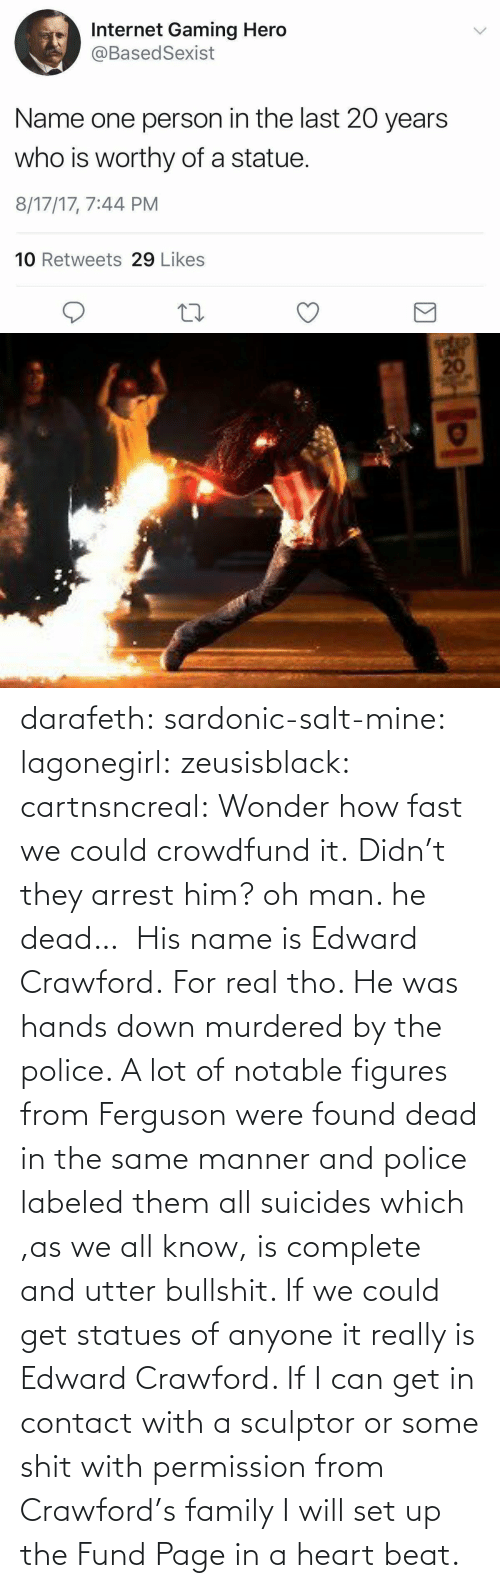 i can: darafeth: sardonic-salt-mine:  lagonegirl:  zeusisblack:  cartnsncreal:   Wonder how fast we could crowdfund it.    Didn't they arrest him?  oh man. he dead…   His name is Edward Crawford.   For real tho. He was hands down murdered by the police. A lot of notable figures from Ferguson were found dead in the same manner and police labeled them all suicides which ,as we all know, is complete and utter bullshit.  If we could get statues of anyone it really is Edward Crawford. If I can get in contact with a sculptor or some shit with permission from Crawford's family I will set up the Fund Page in a heart beat.